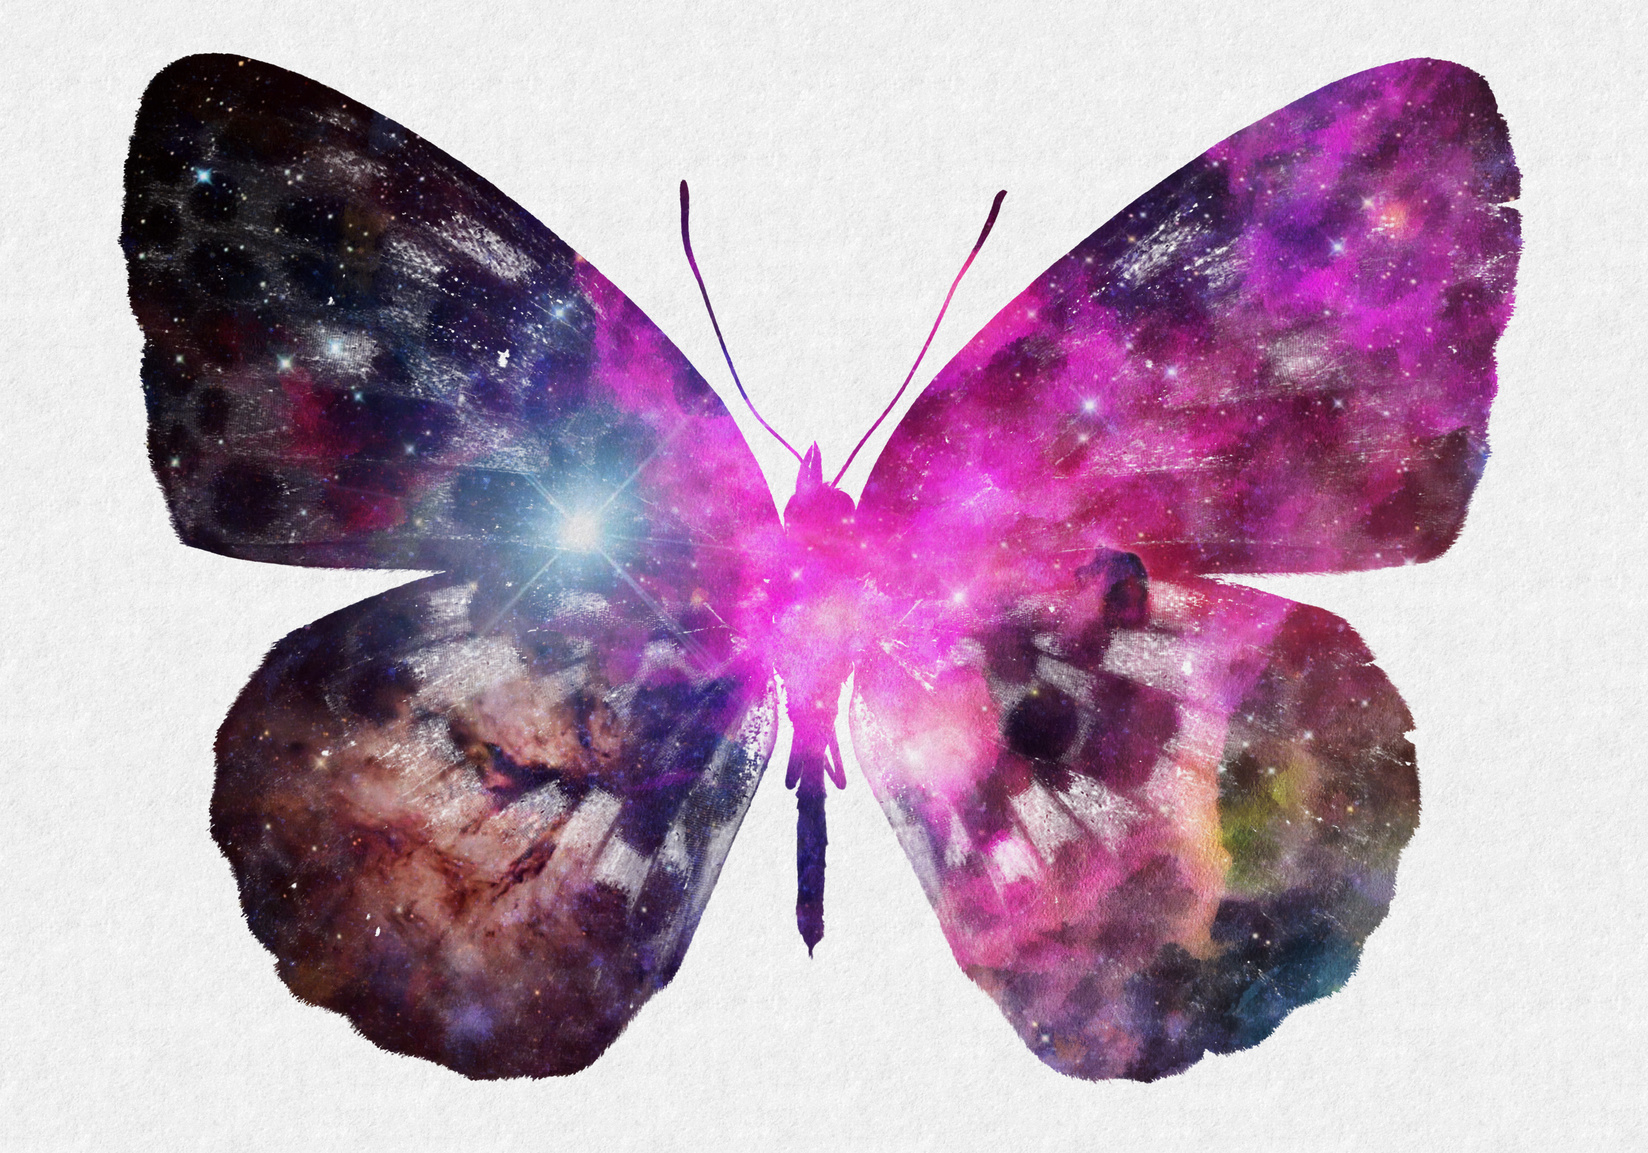 Watercolor Space Butterfly Art, Space Texture, Print Ready, Poster Design